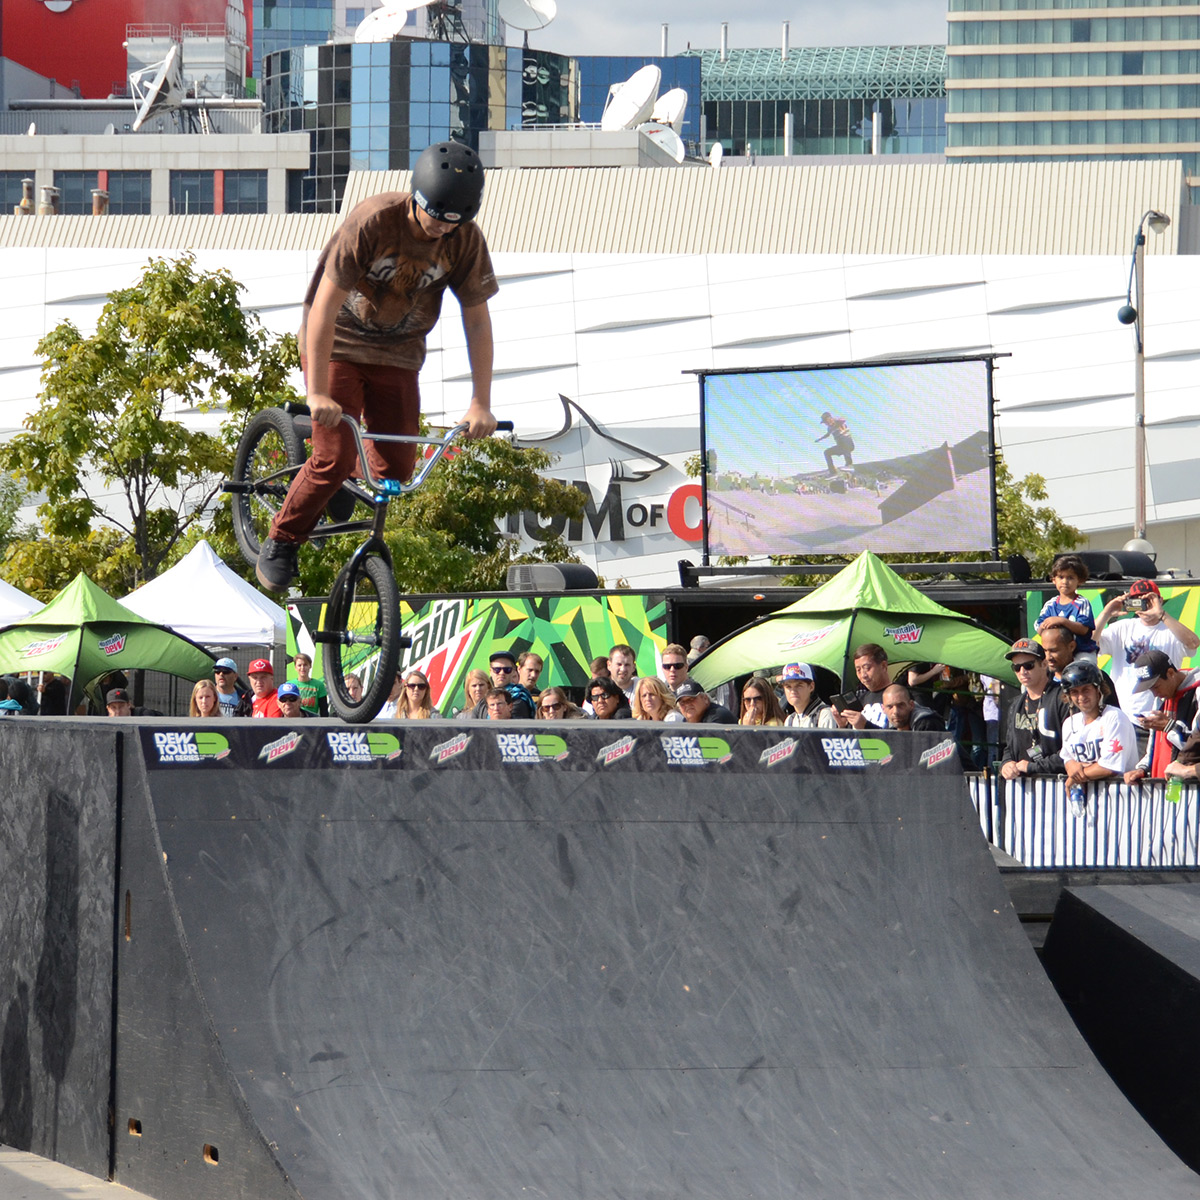 Nose Manual at BMX Dew Tour Am Series in Toronto